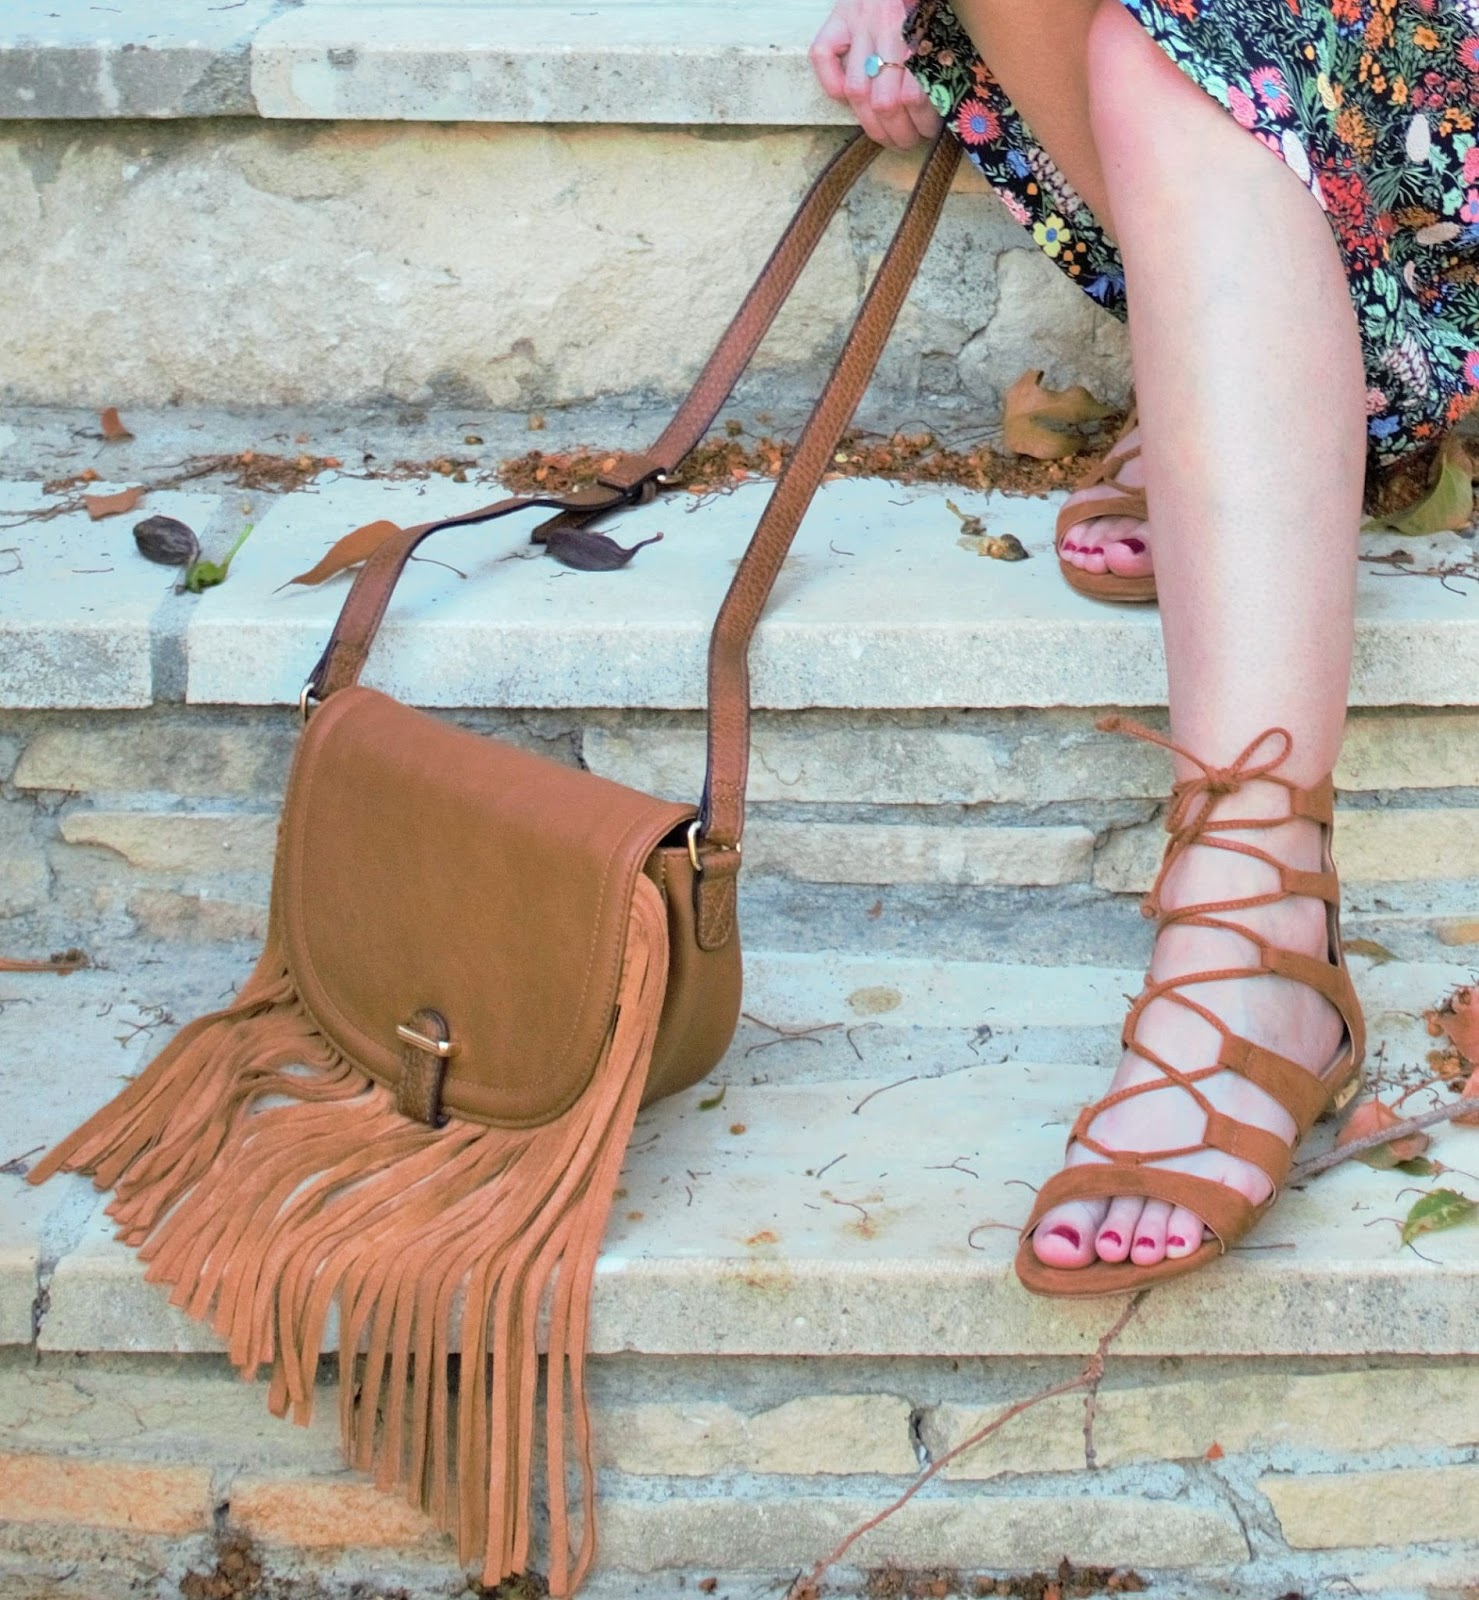 Topshop fringed Boho bag and lace-up sandals